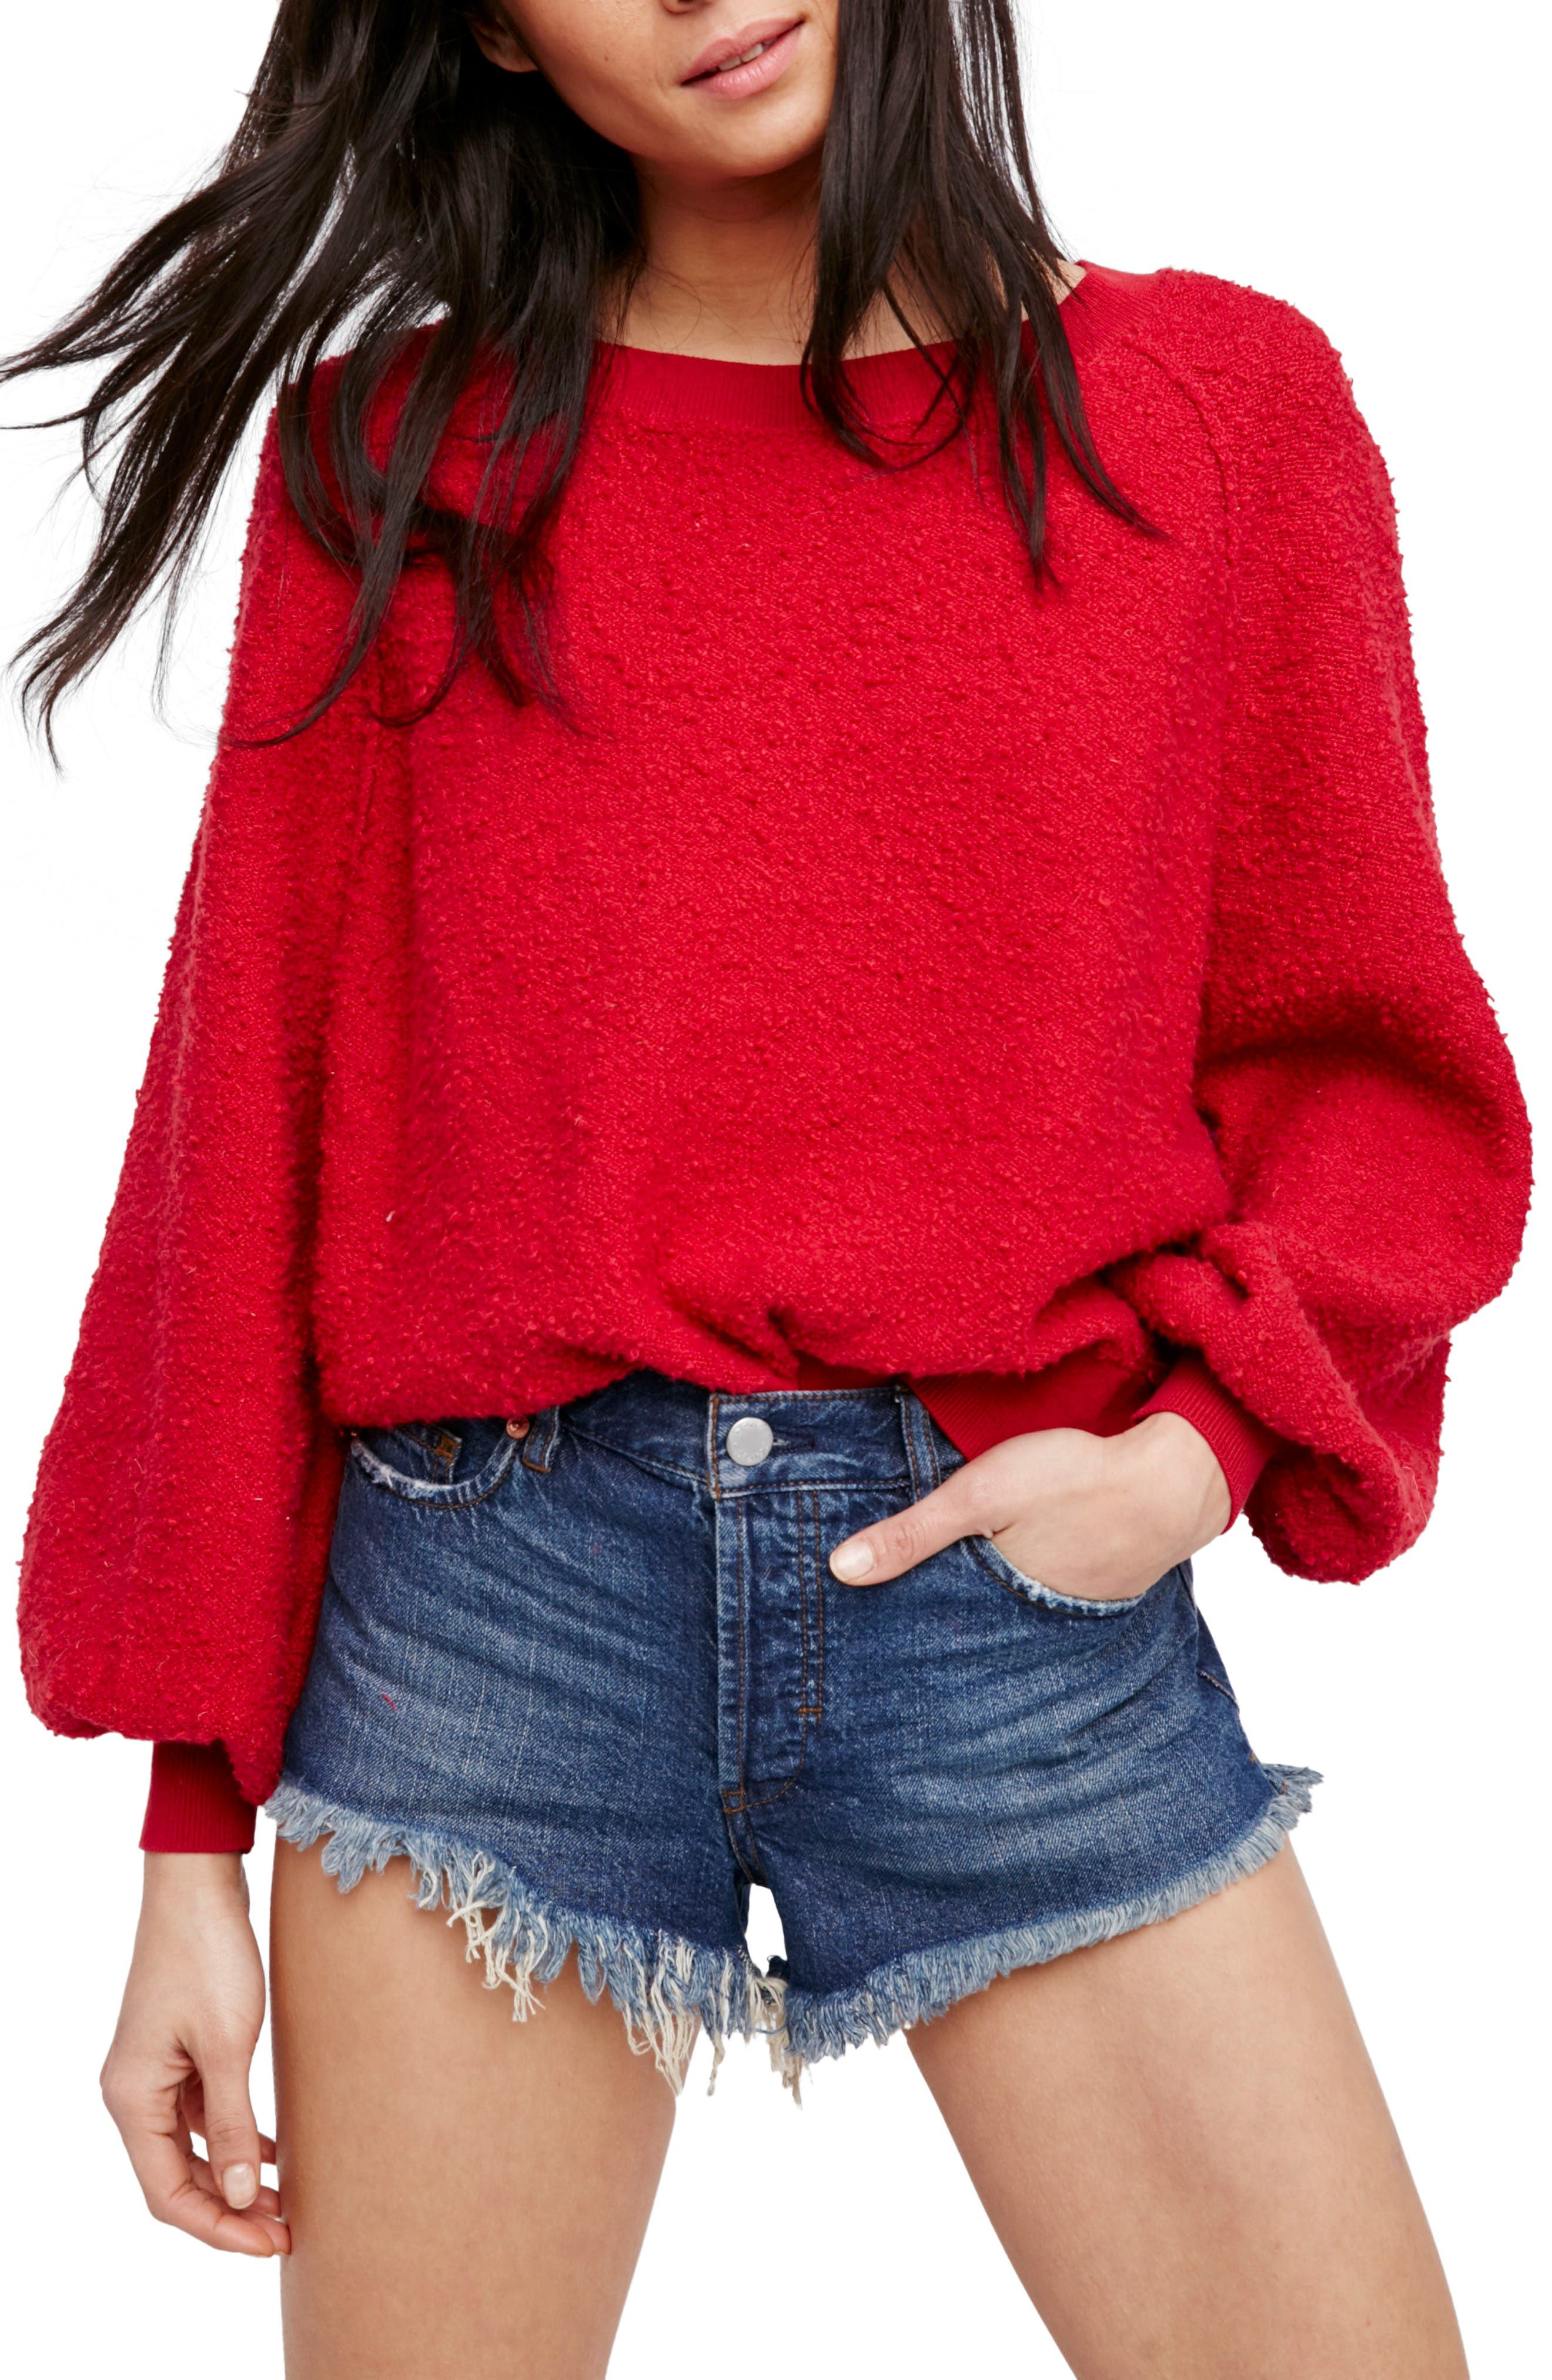 Main Image - Free People Found My Friend Sweatshirt